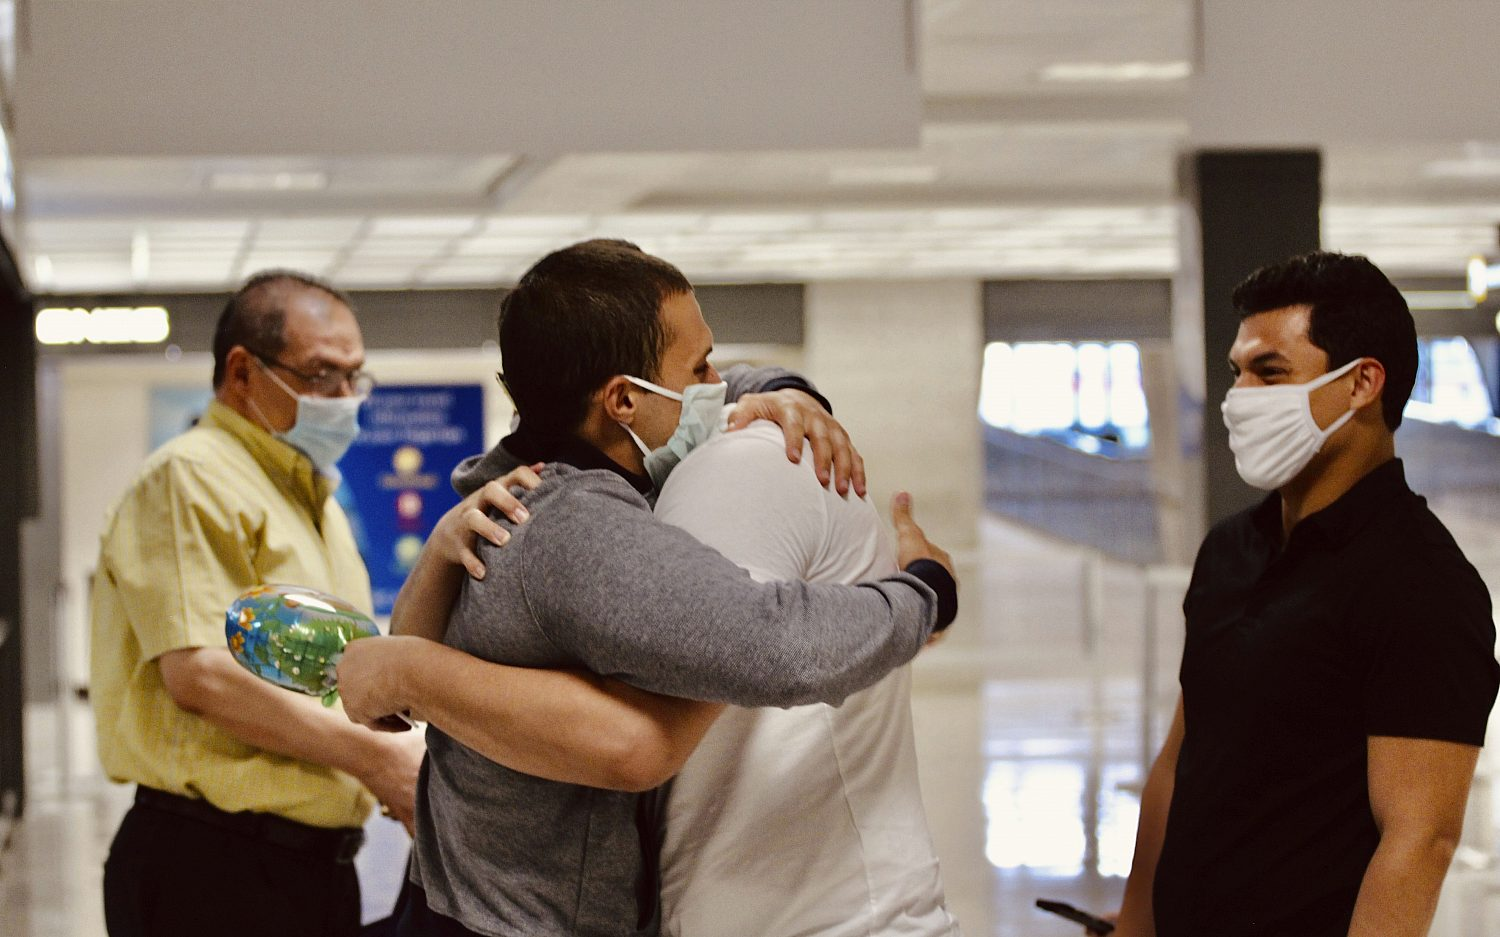 American student released from Egyptian prison